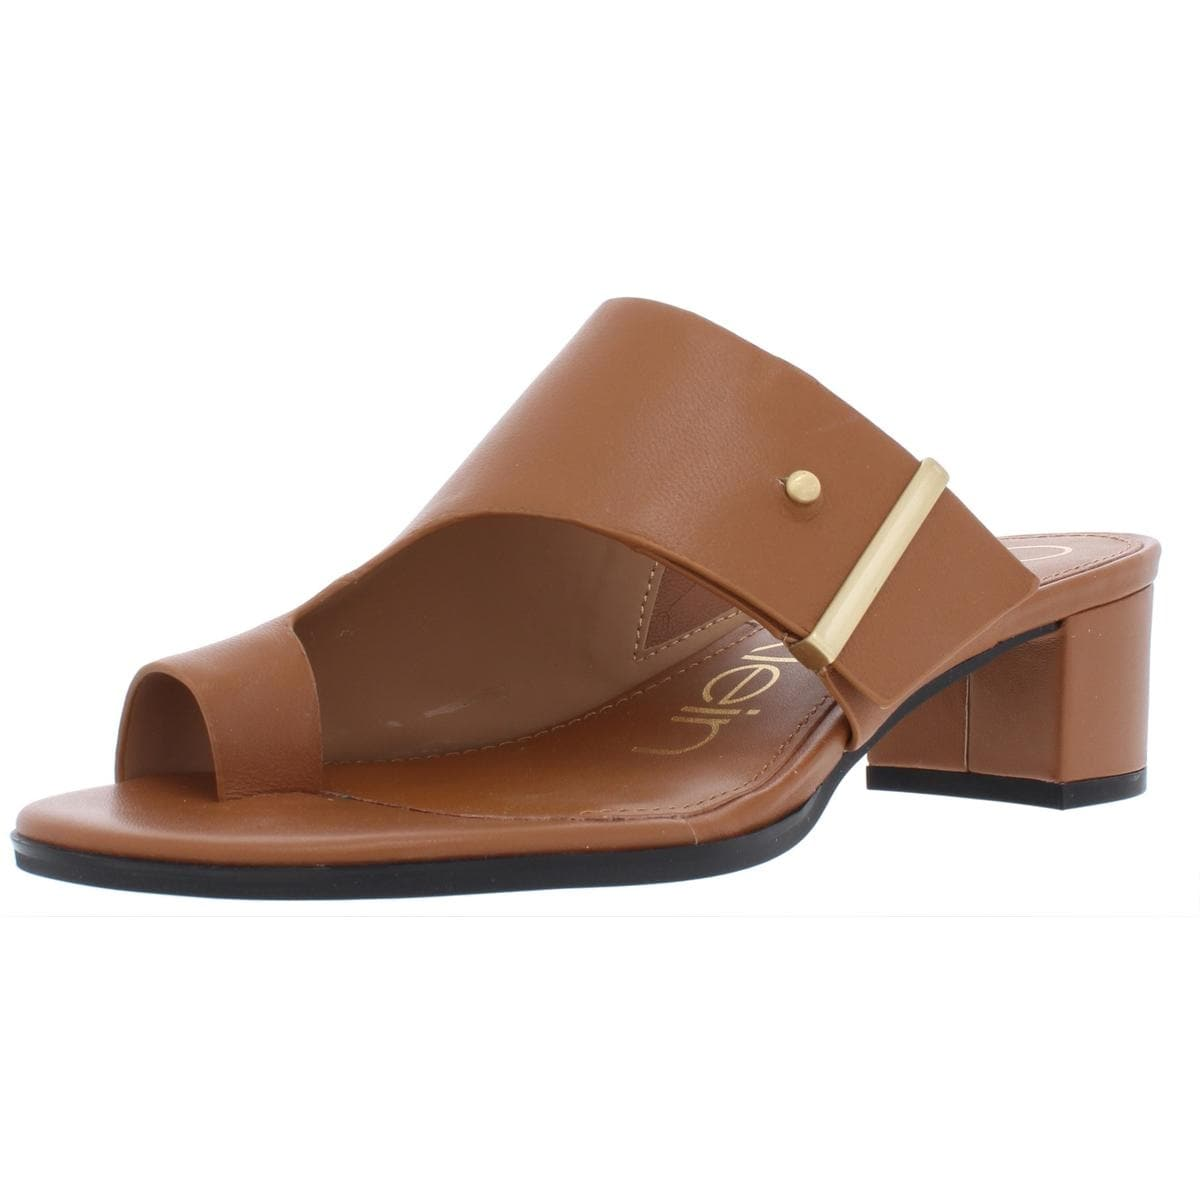 2f958d5750 Shop Calvin Klein Womens Daria Dress Sandals Leather Block Heel - Free  Shipping Today - Overstock - 27588952